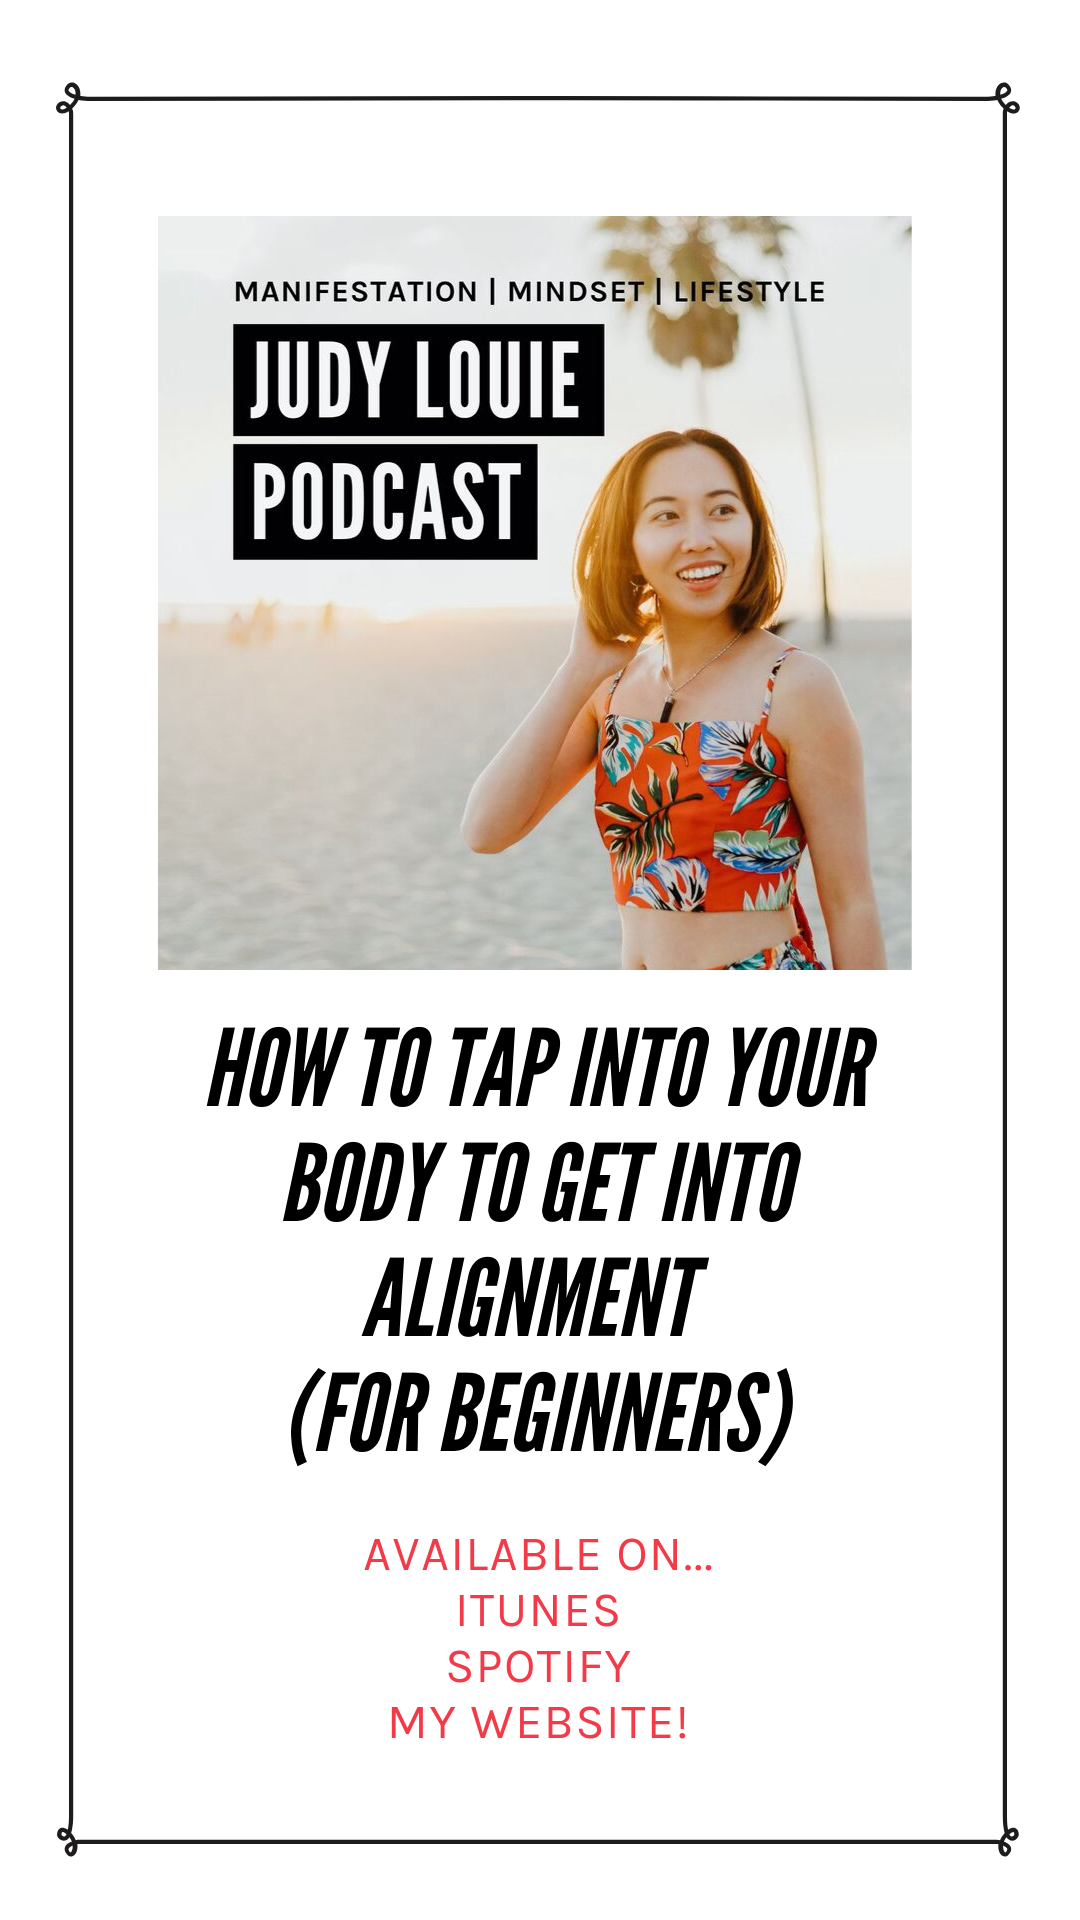 judy louie podcast - body alignment.png